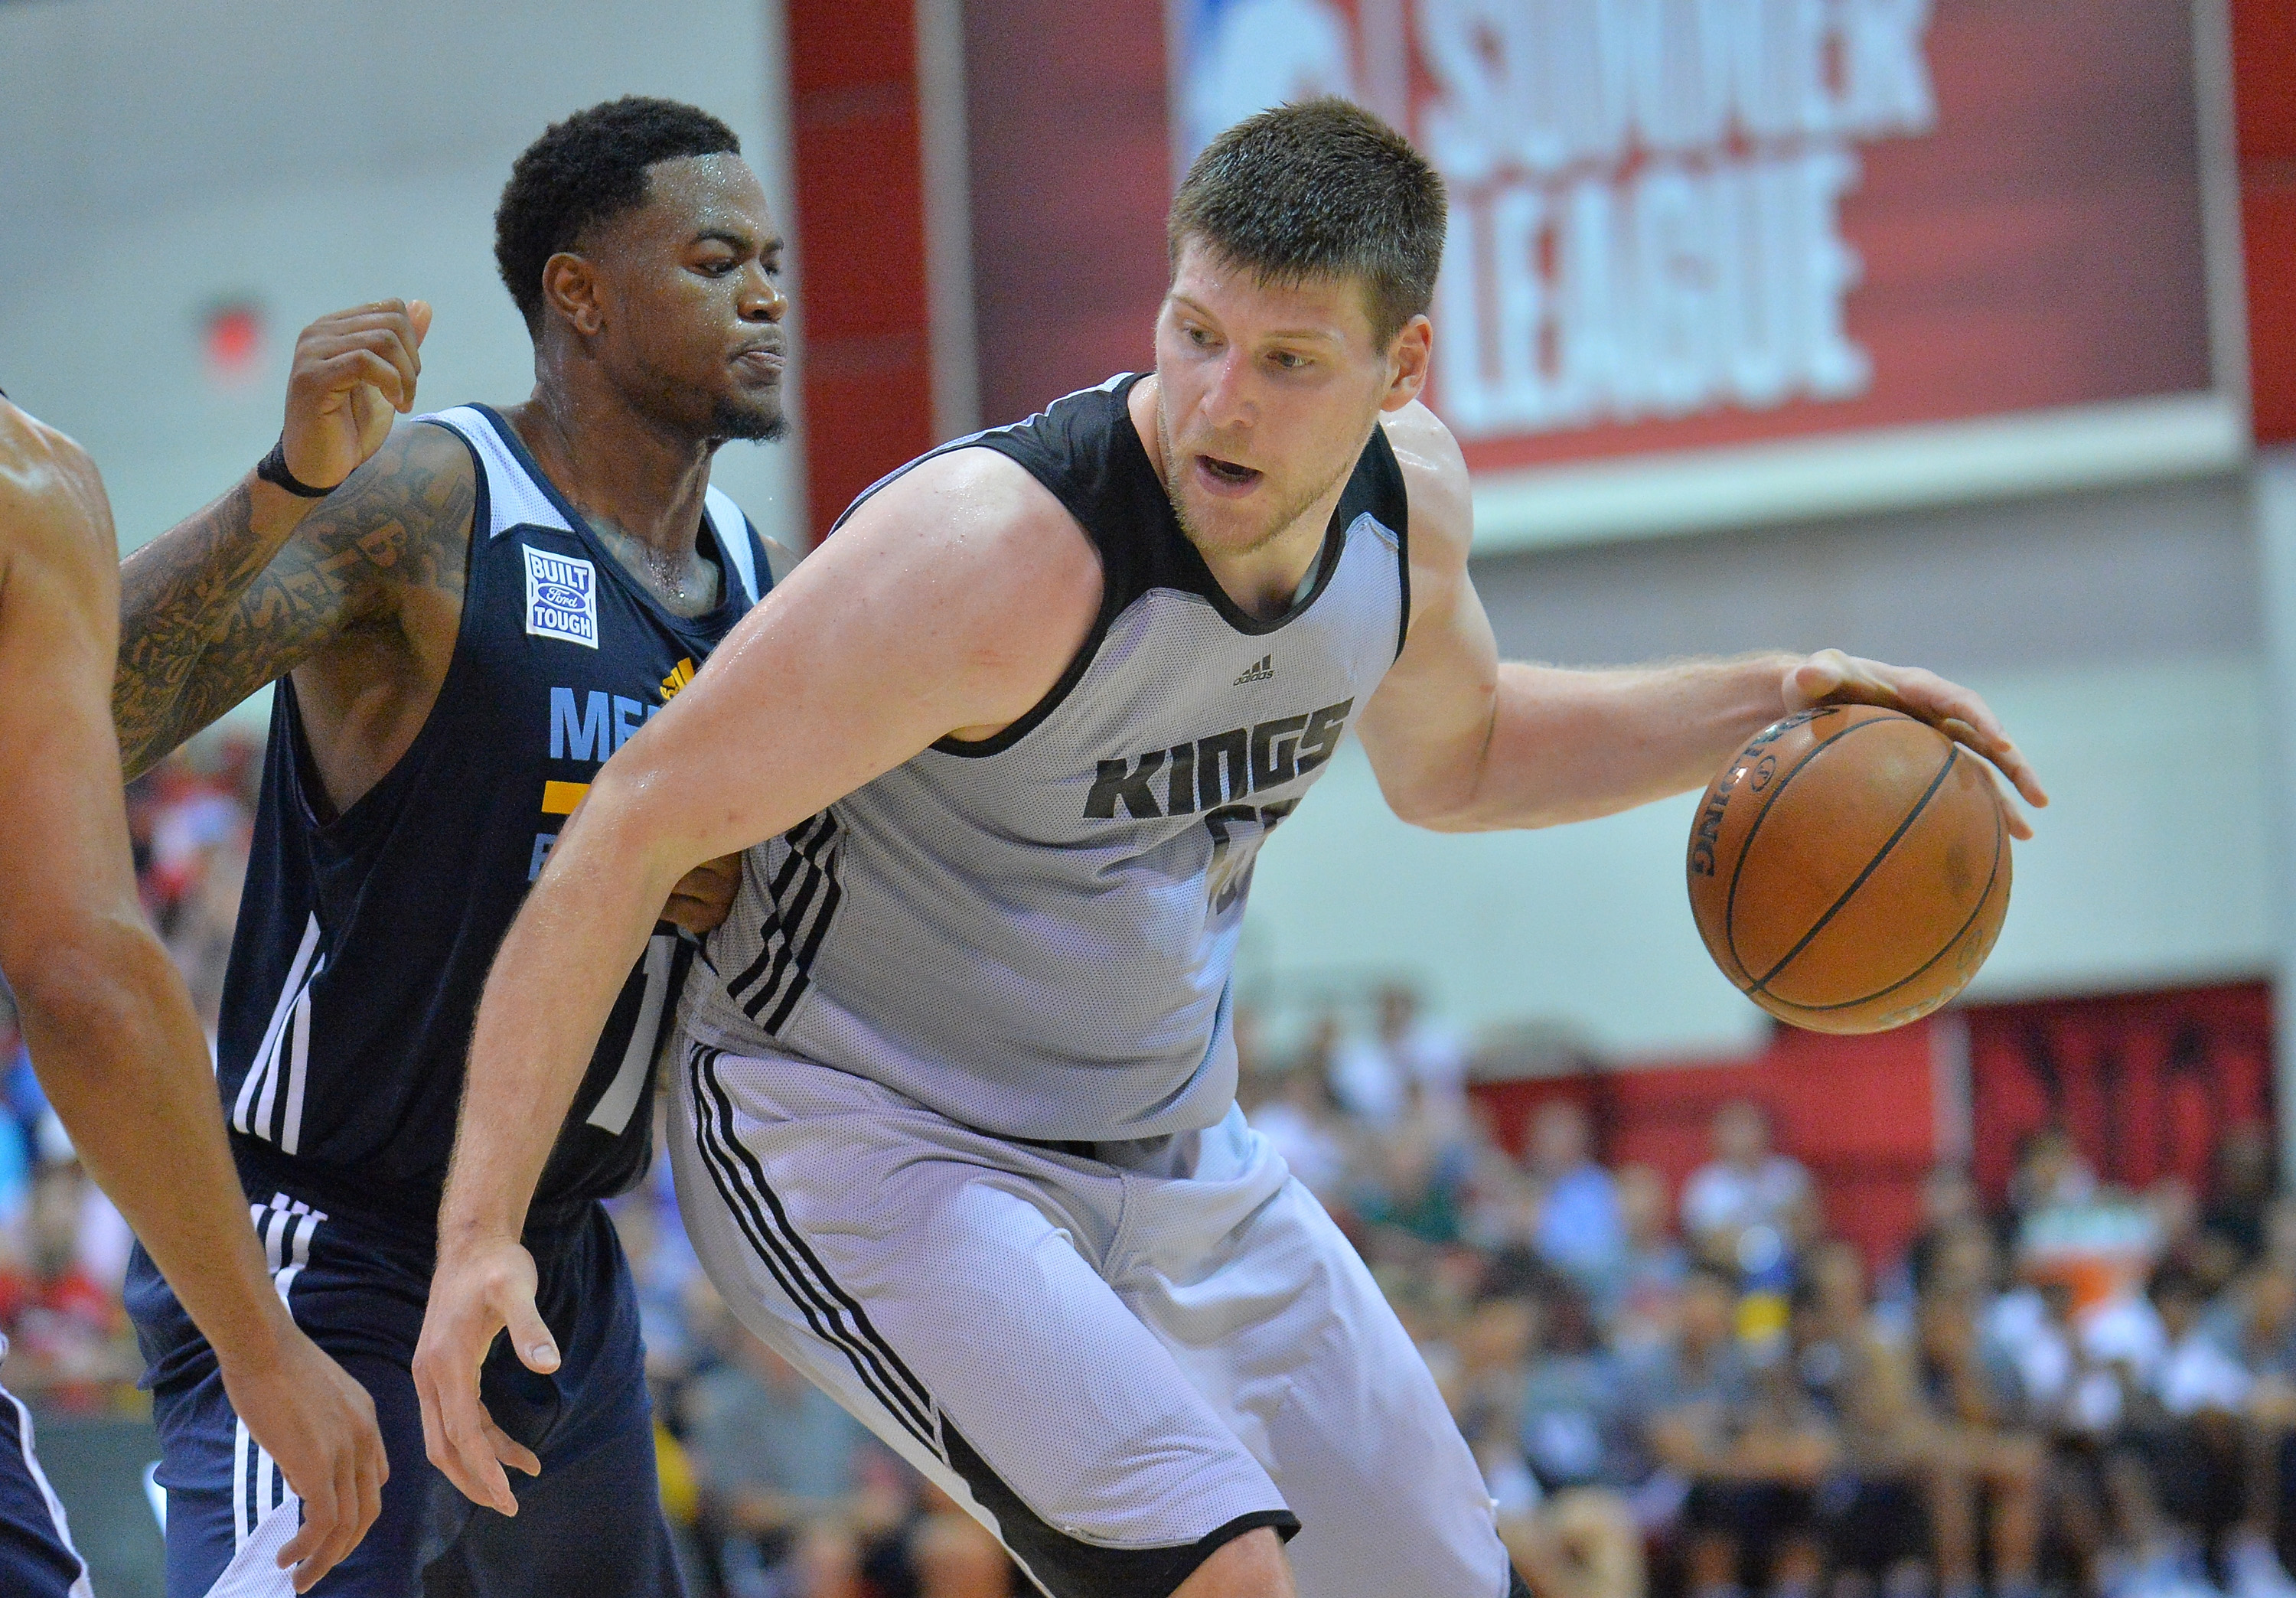 811540384-2017-las-vegas-summer-league-memphis-grizzlies-v-sacramento-kings.jpg